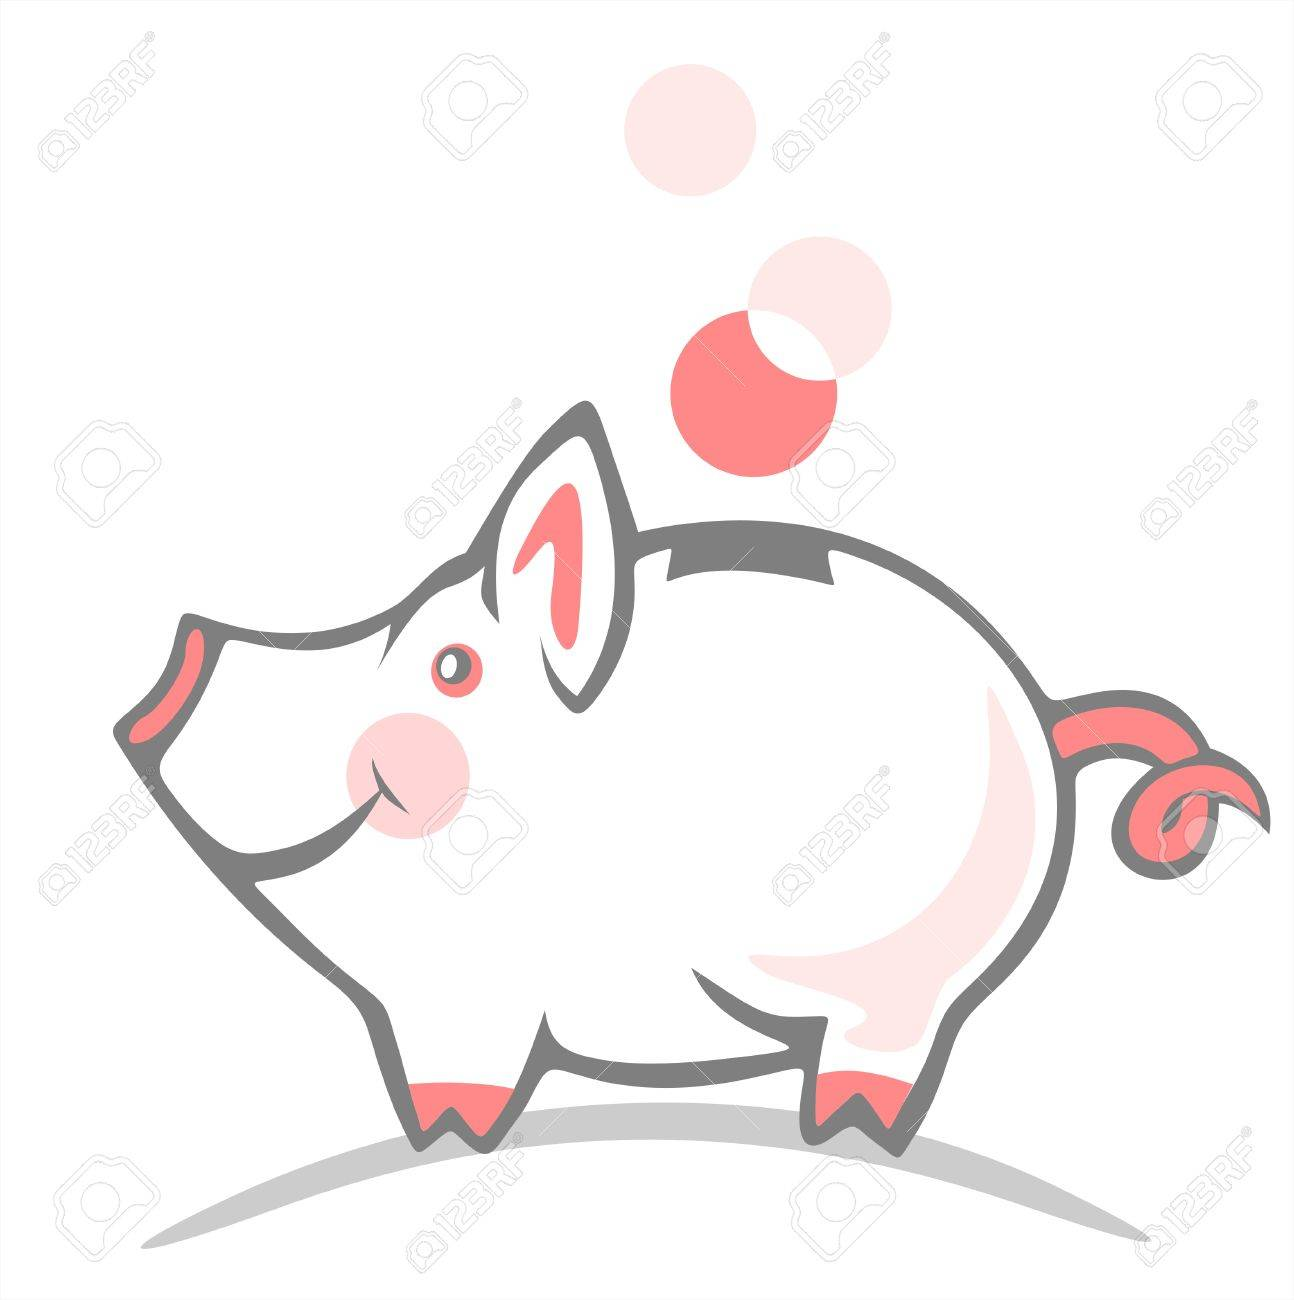 22 570 piggy bank financial stock illustrations cliparts and